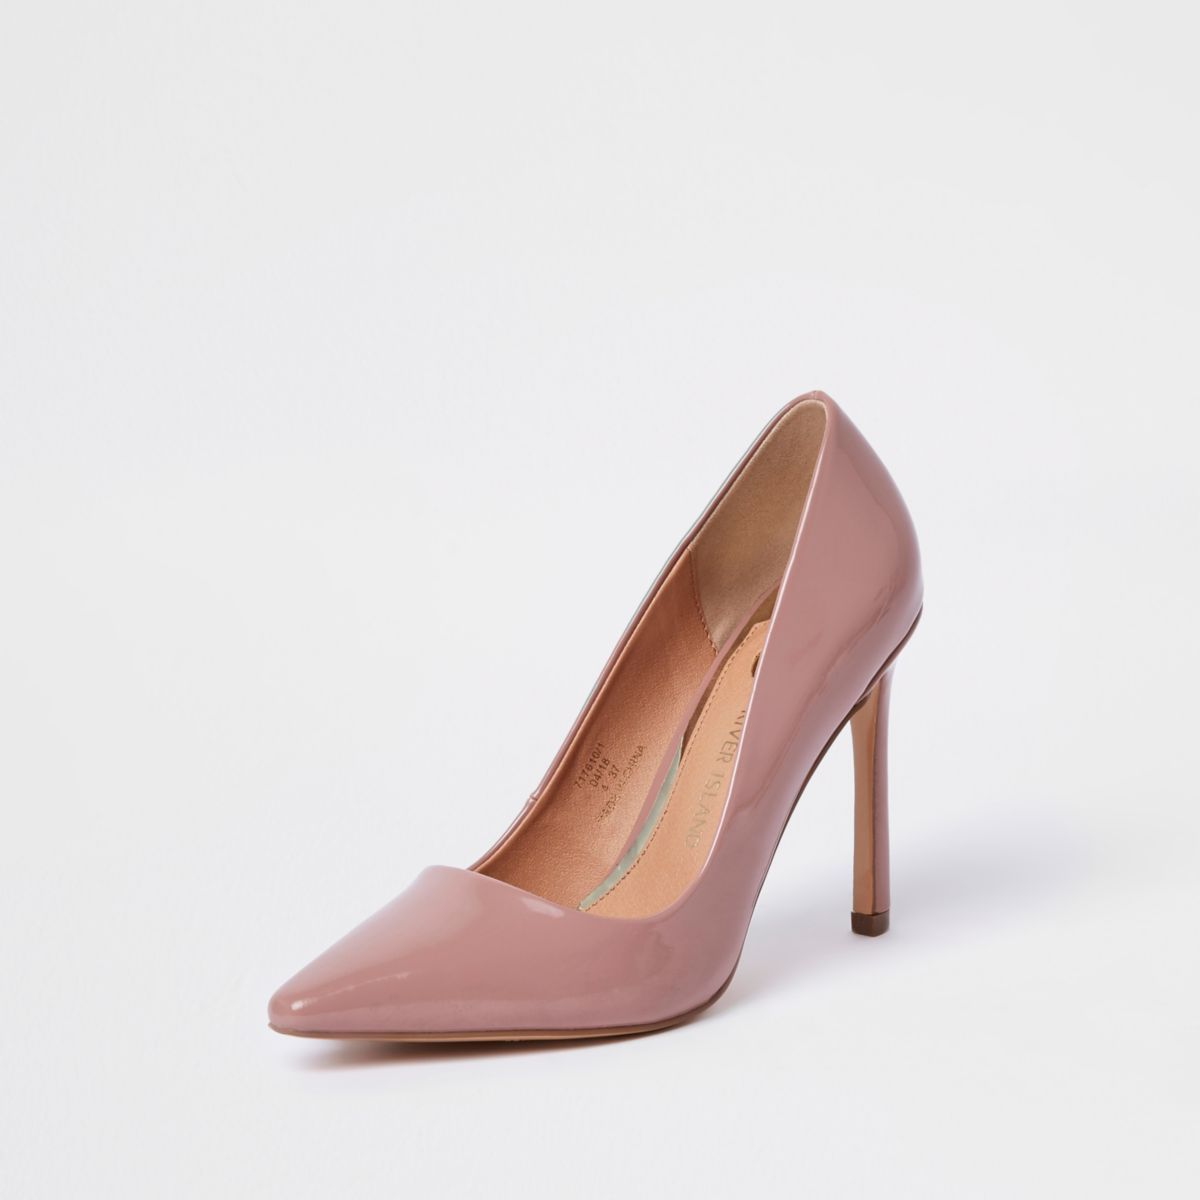 d5c8006fa8b Nude pink patent court shoes | Shoes Inspiration in 2019 | Court ...